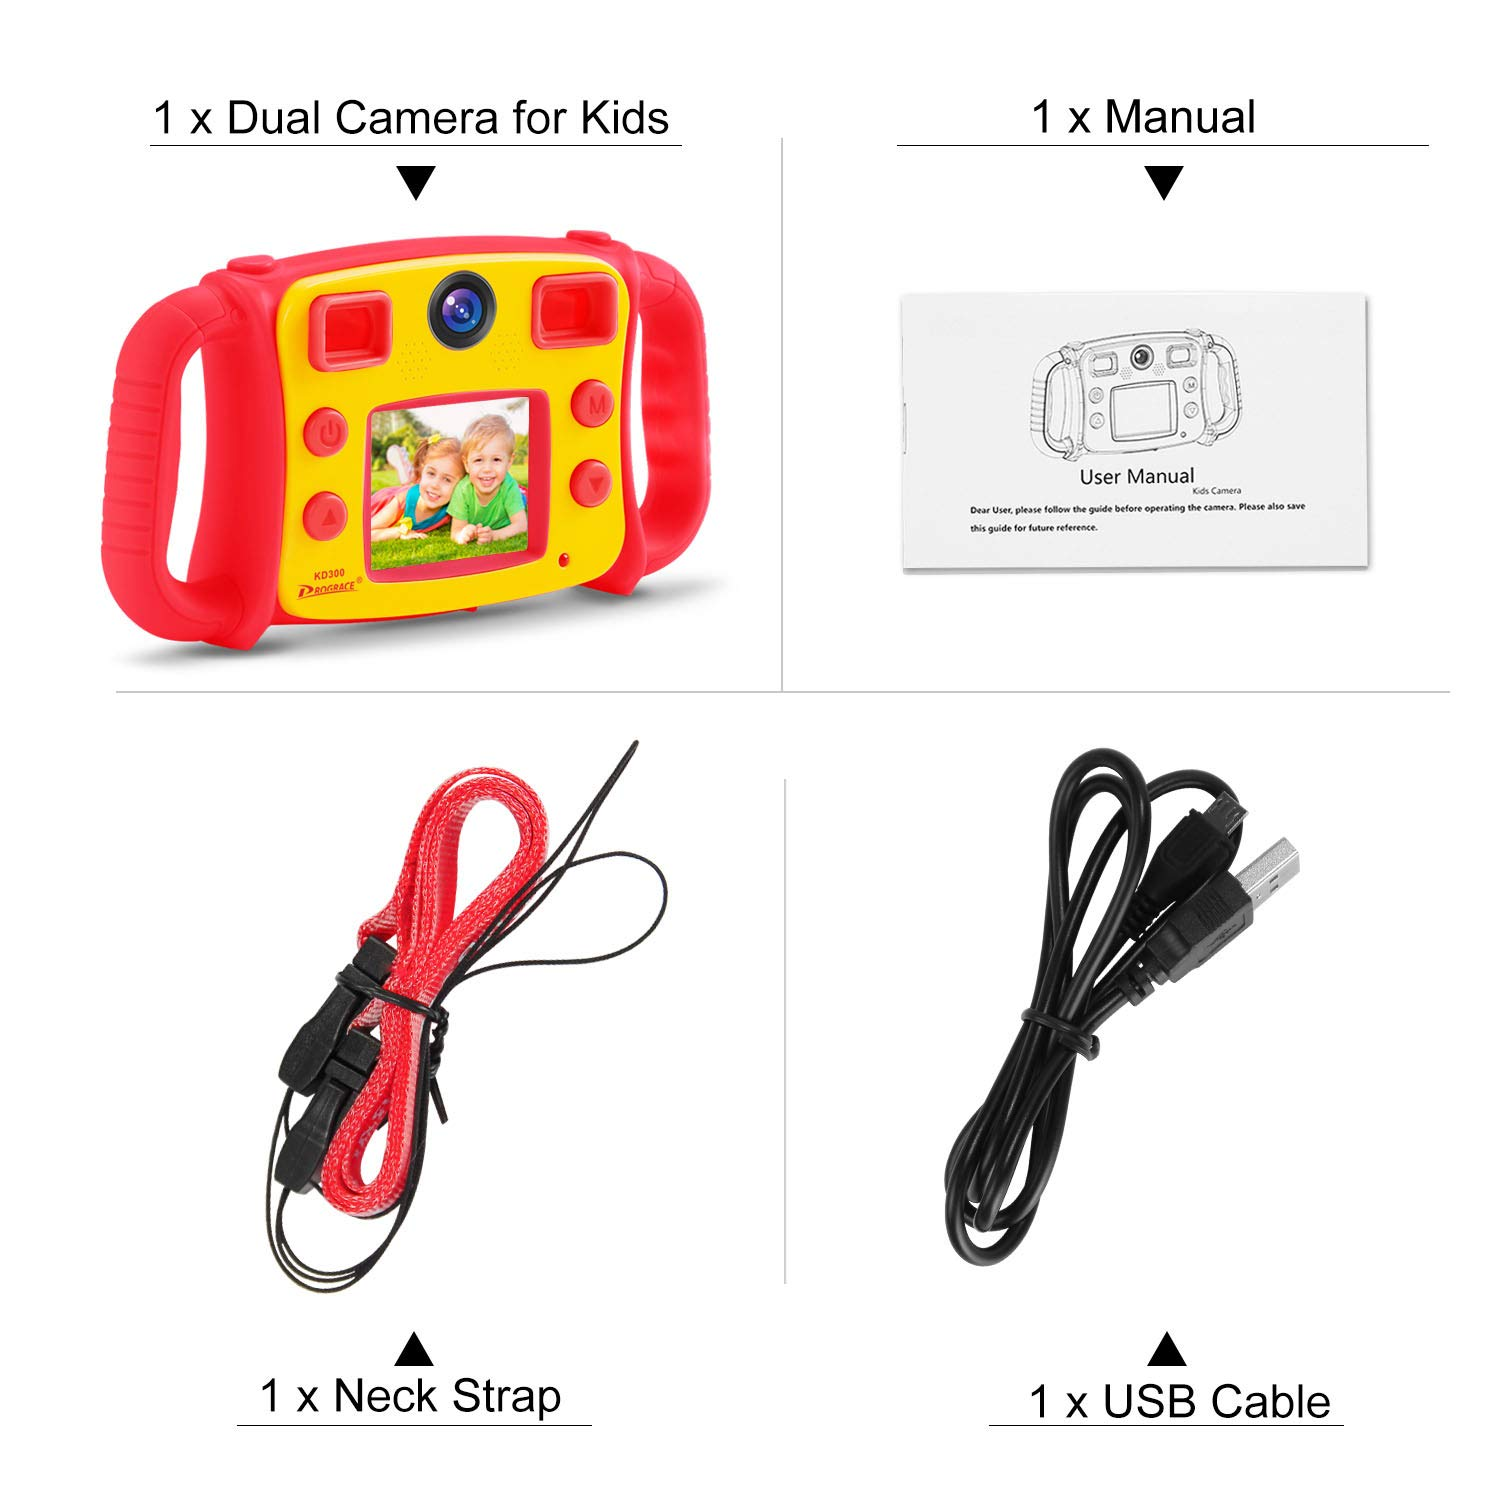 Prograce Kids Camera Dual Camera Selfie Digital Video Camera Camcorder for Boys Girls with 4X Digital Zoom, Flash Light and Funny Game(Red) by Prograce (Image #8)